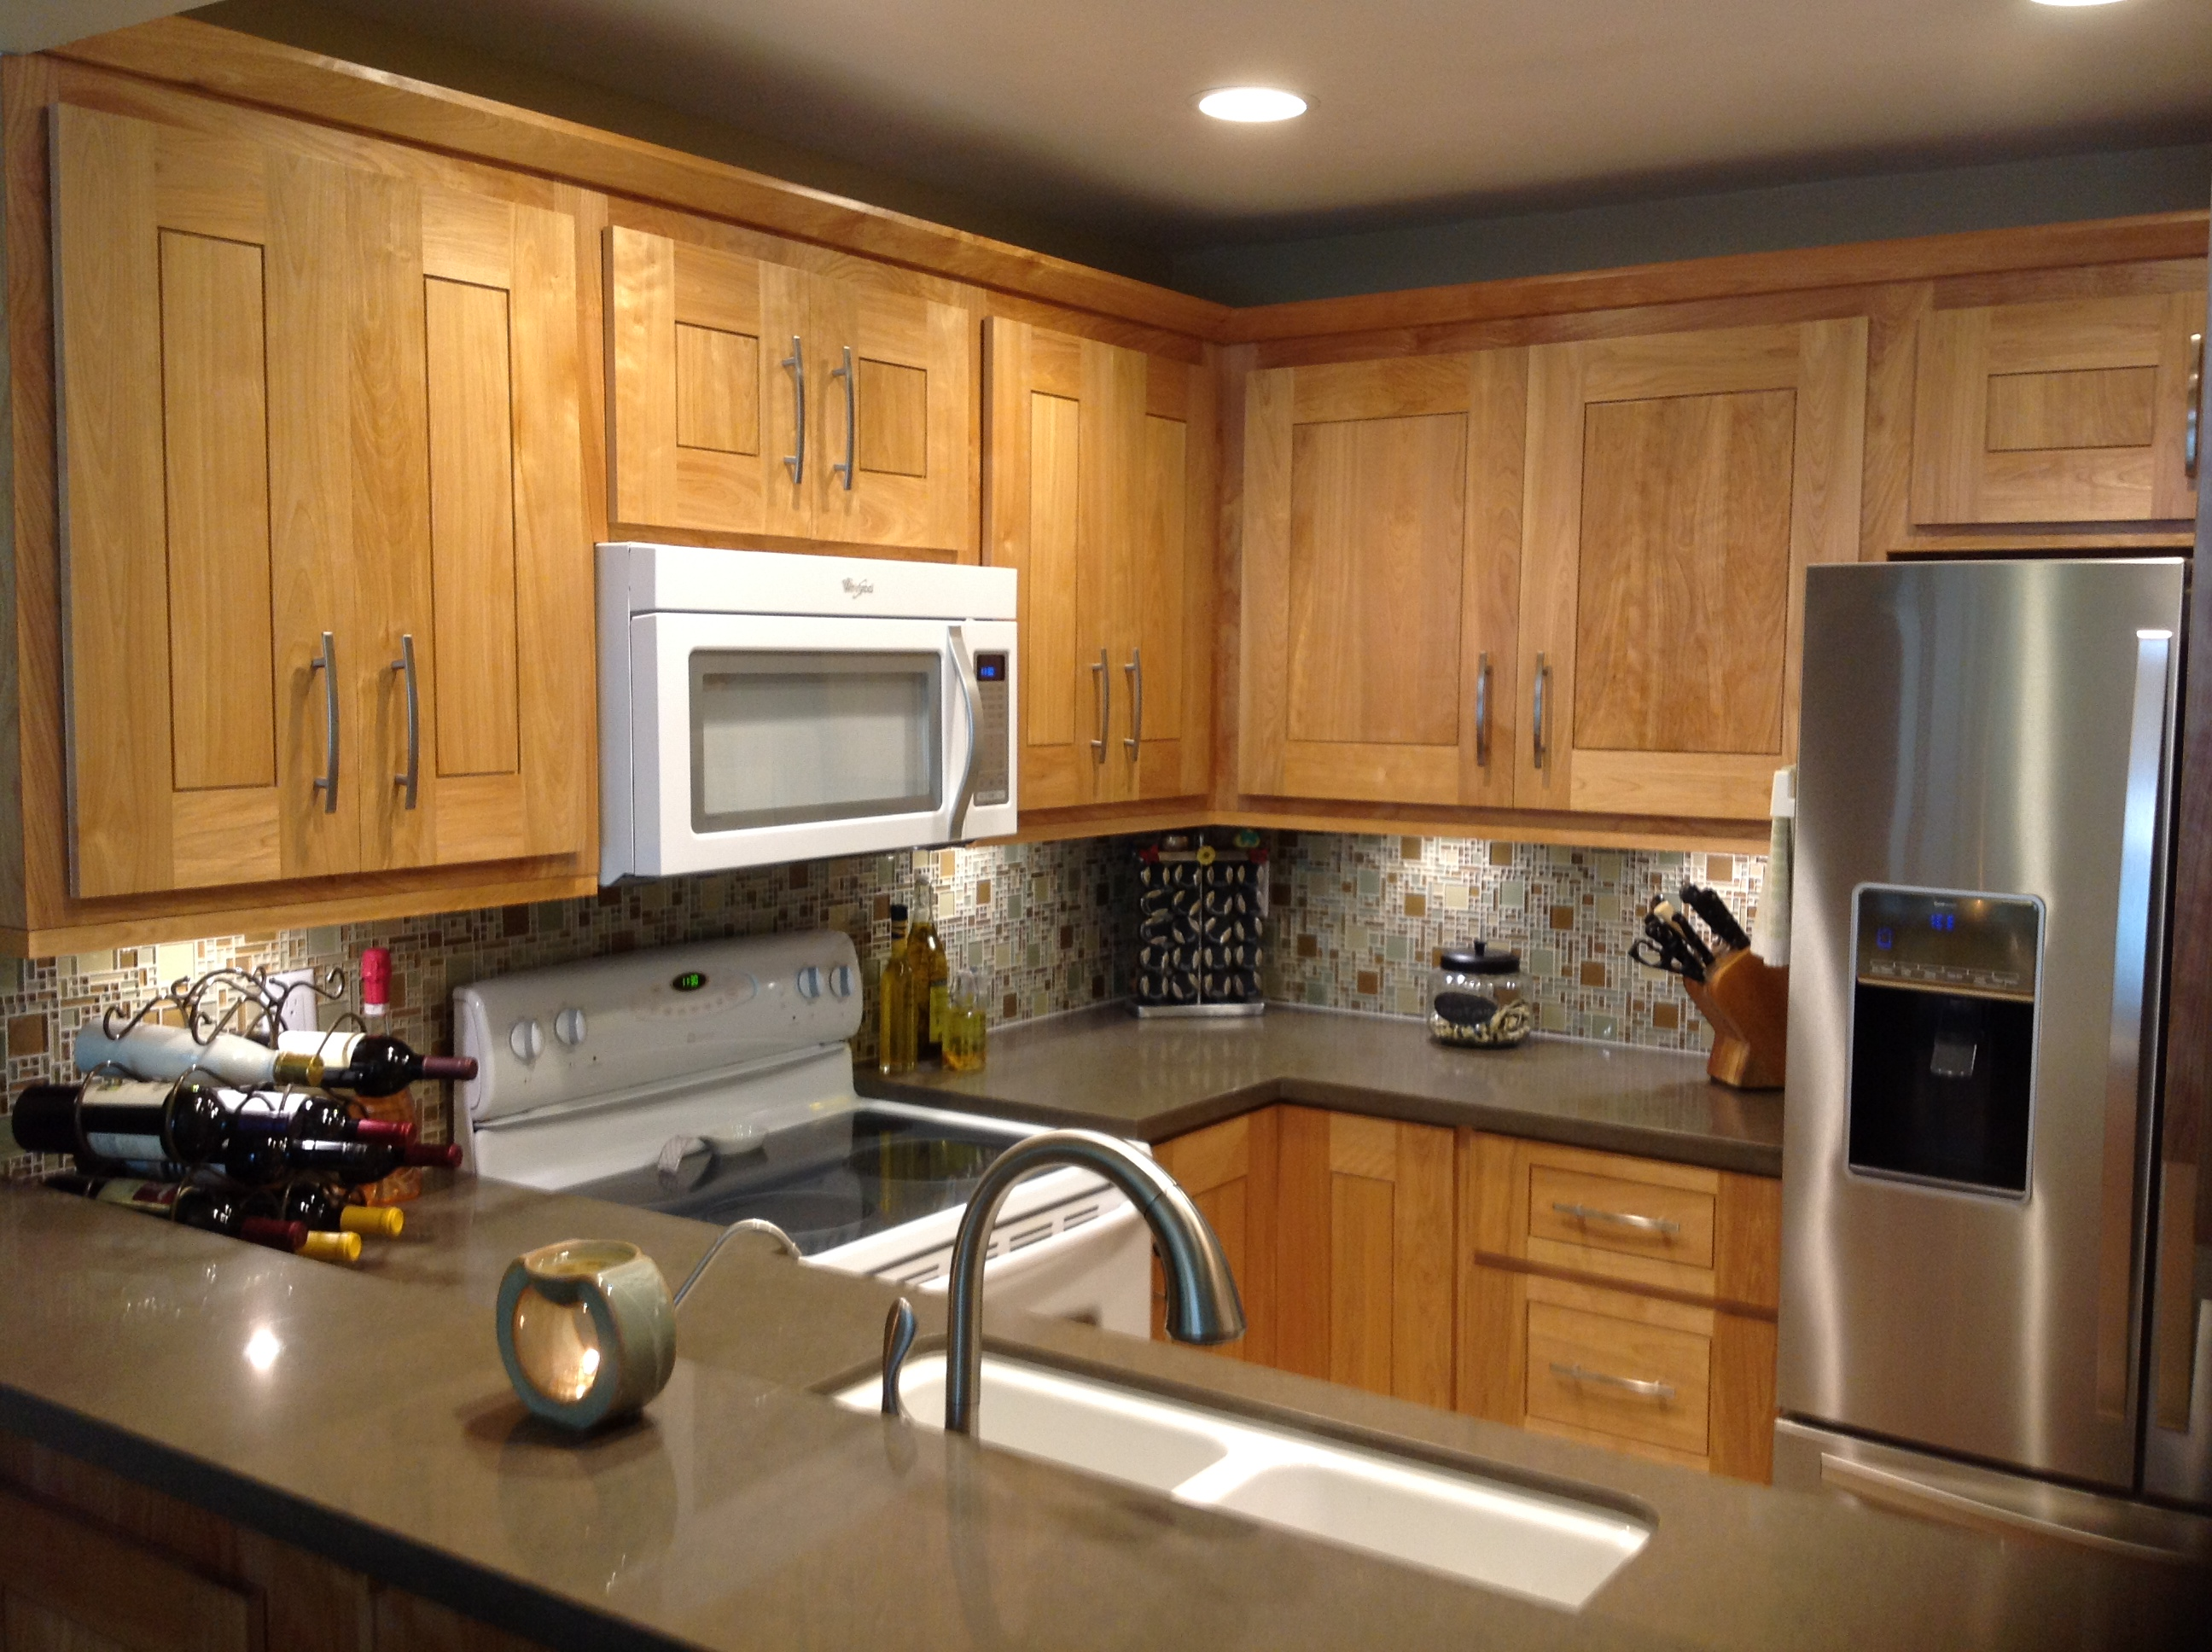 Discount Kitchen Cabinets San Diego Reborn Cabinets And Bath Solutions The Approved Home Pro Show